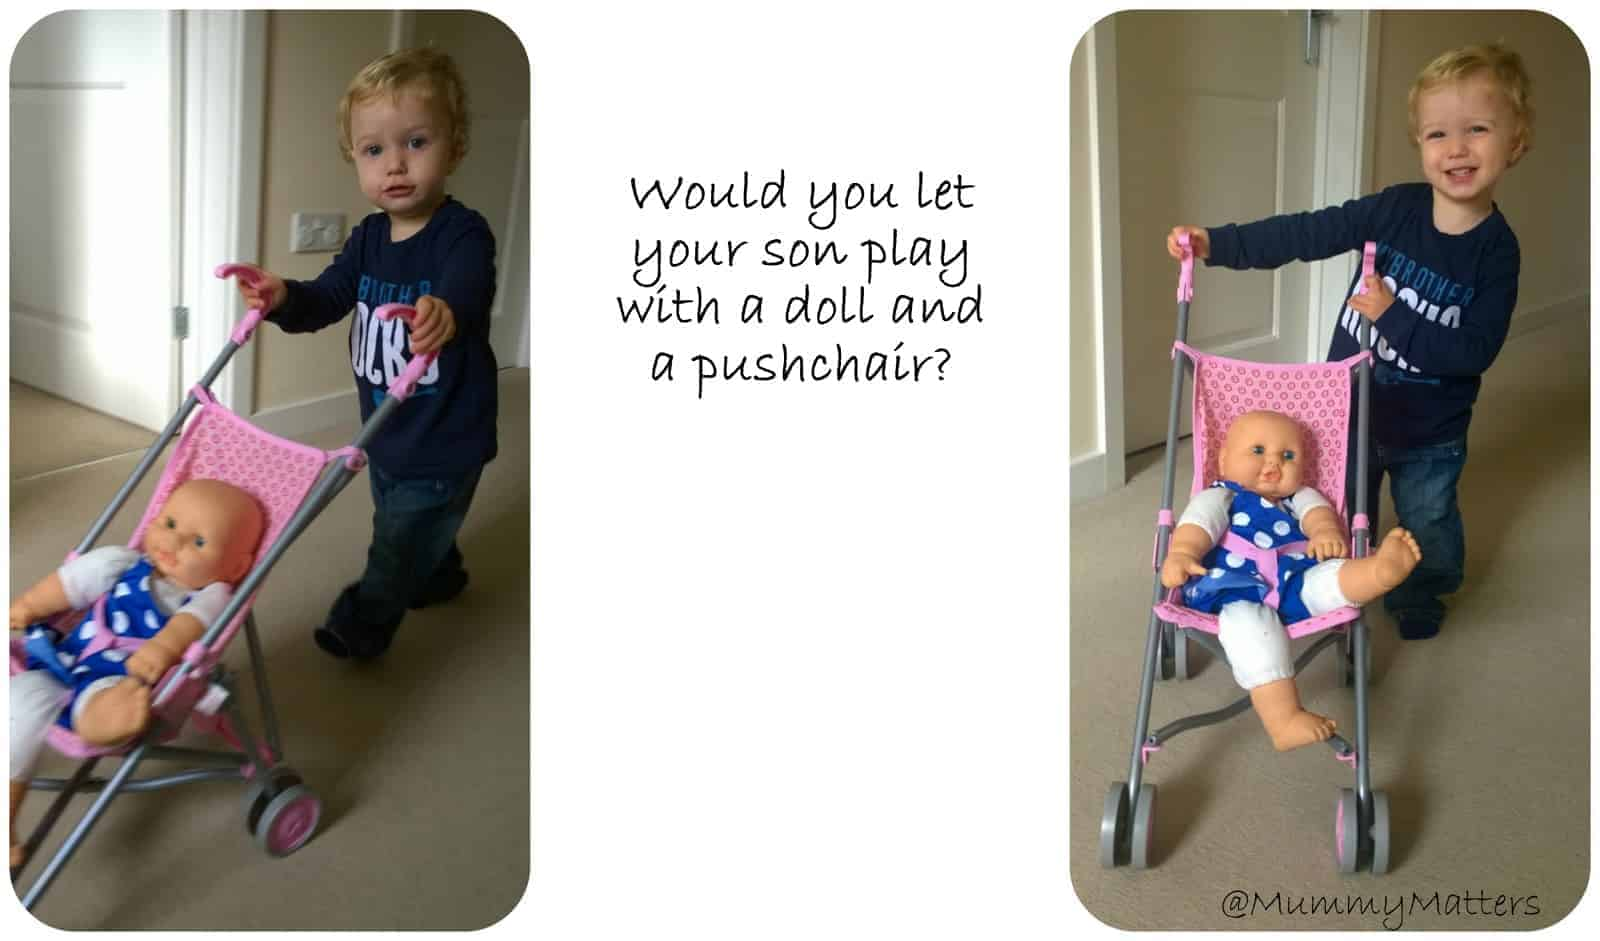 Would you let your son play with a doll and pushchair?